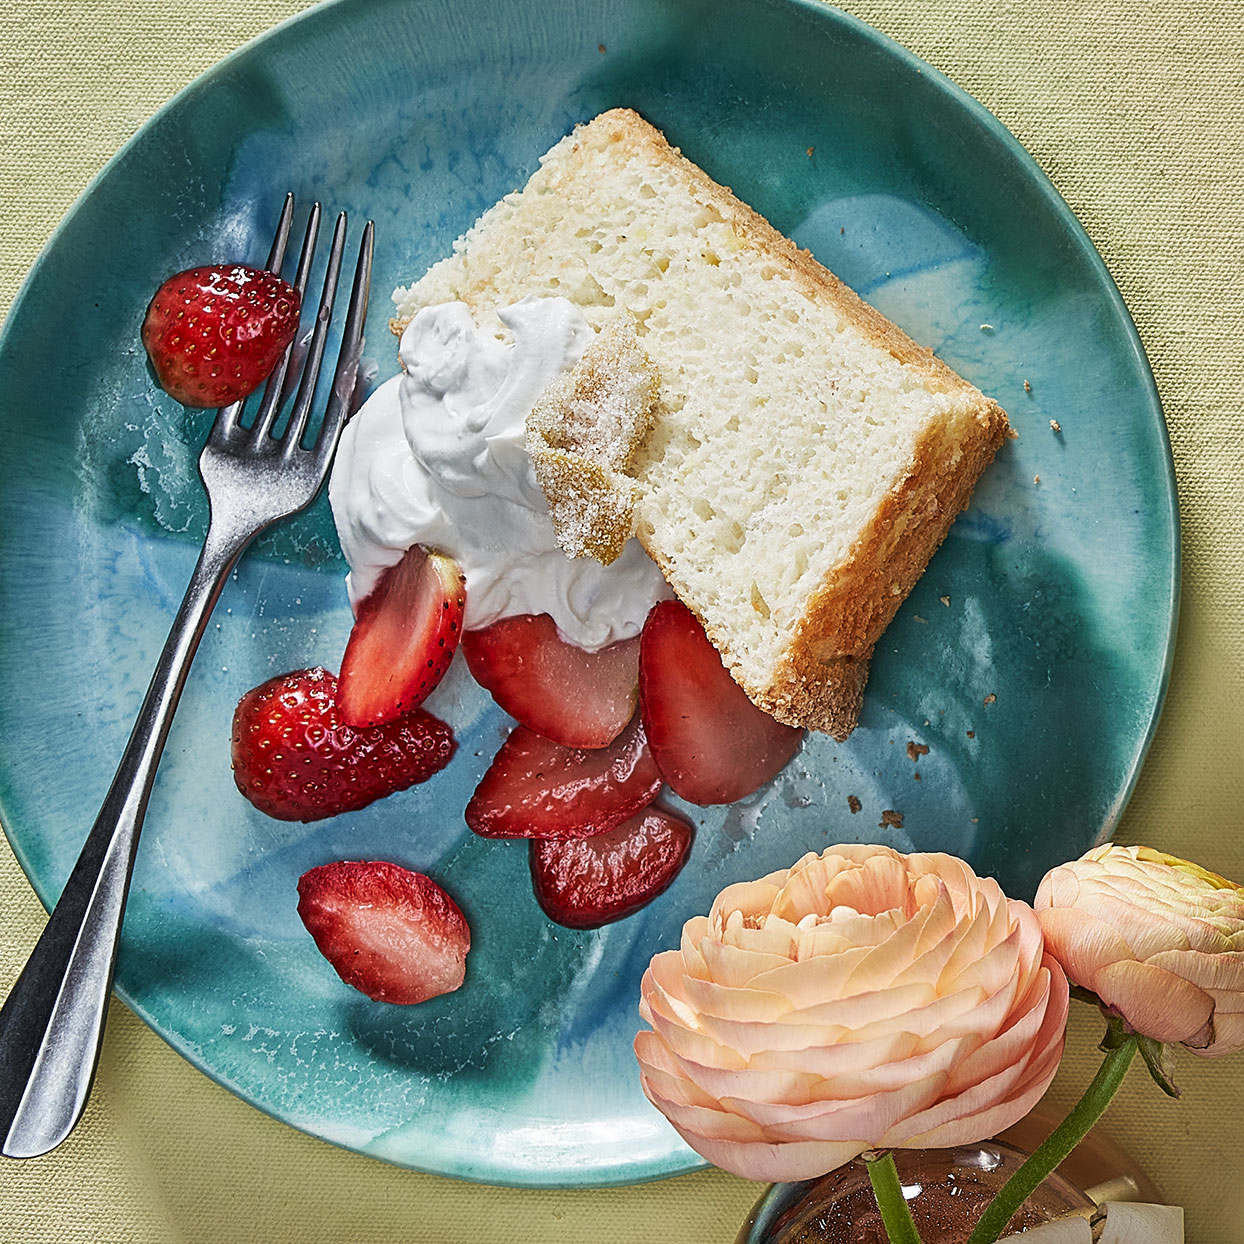 Be sure that your tube pan is free from any grease or flour--the batter for this homemade angel food cake needs to be able to climb the sides of the pan as it bakes to hold its structure. Source: EatingWell Magazine, May 2020